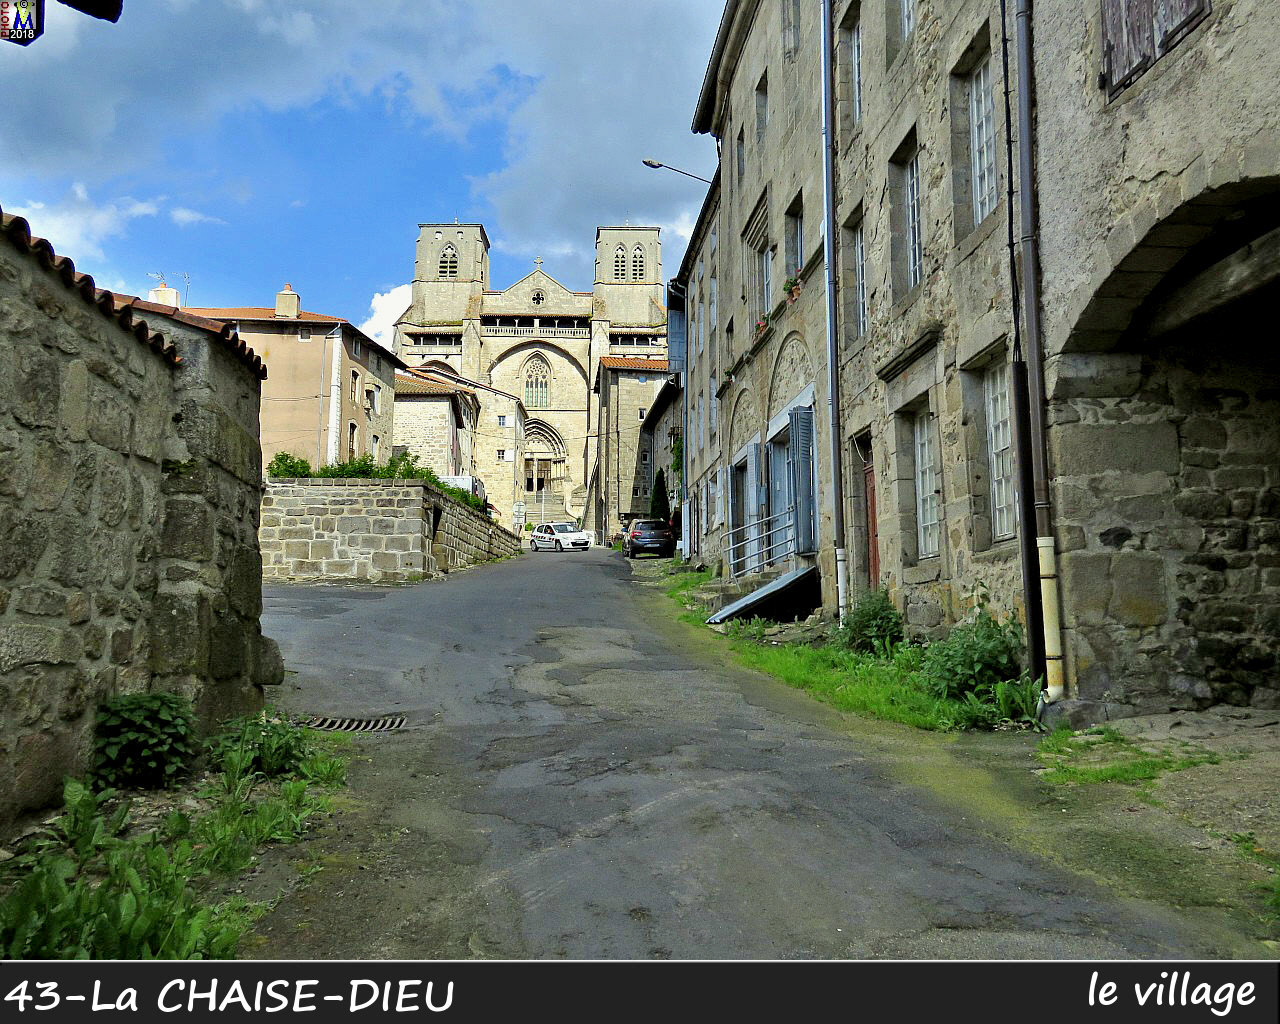 43CHAISE-DIEU_village_106.jpg